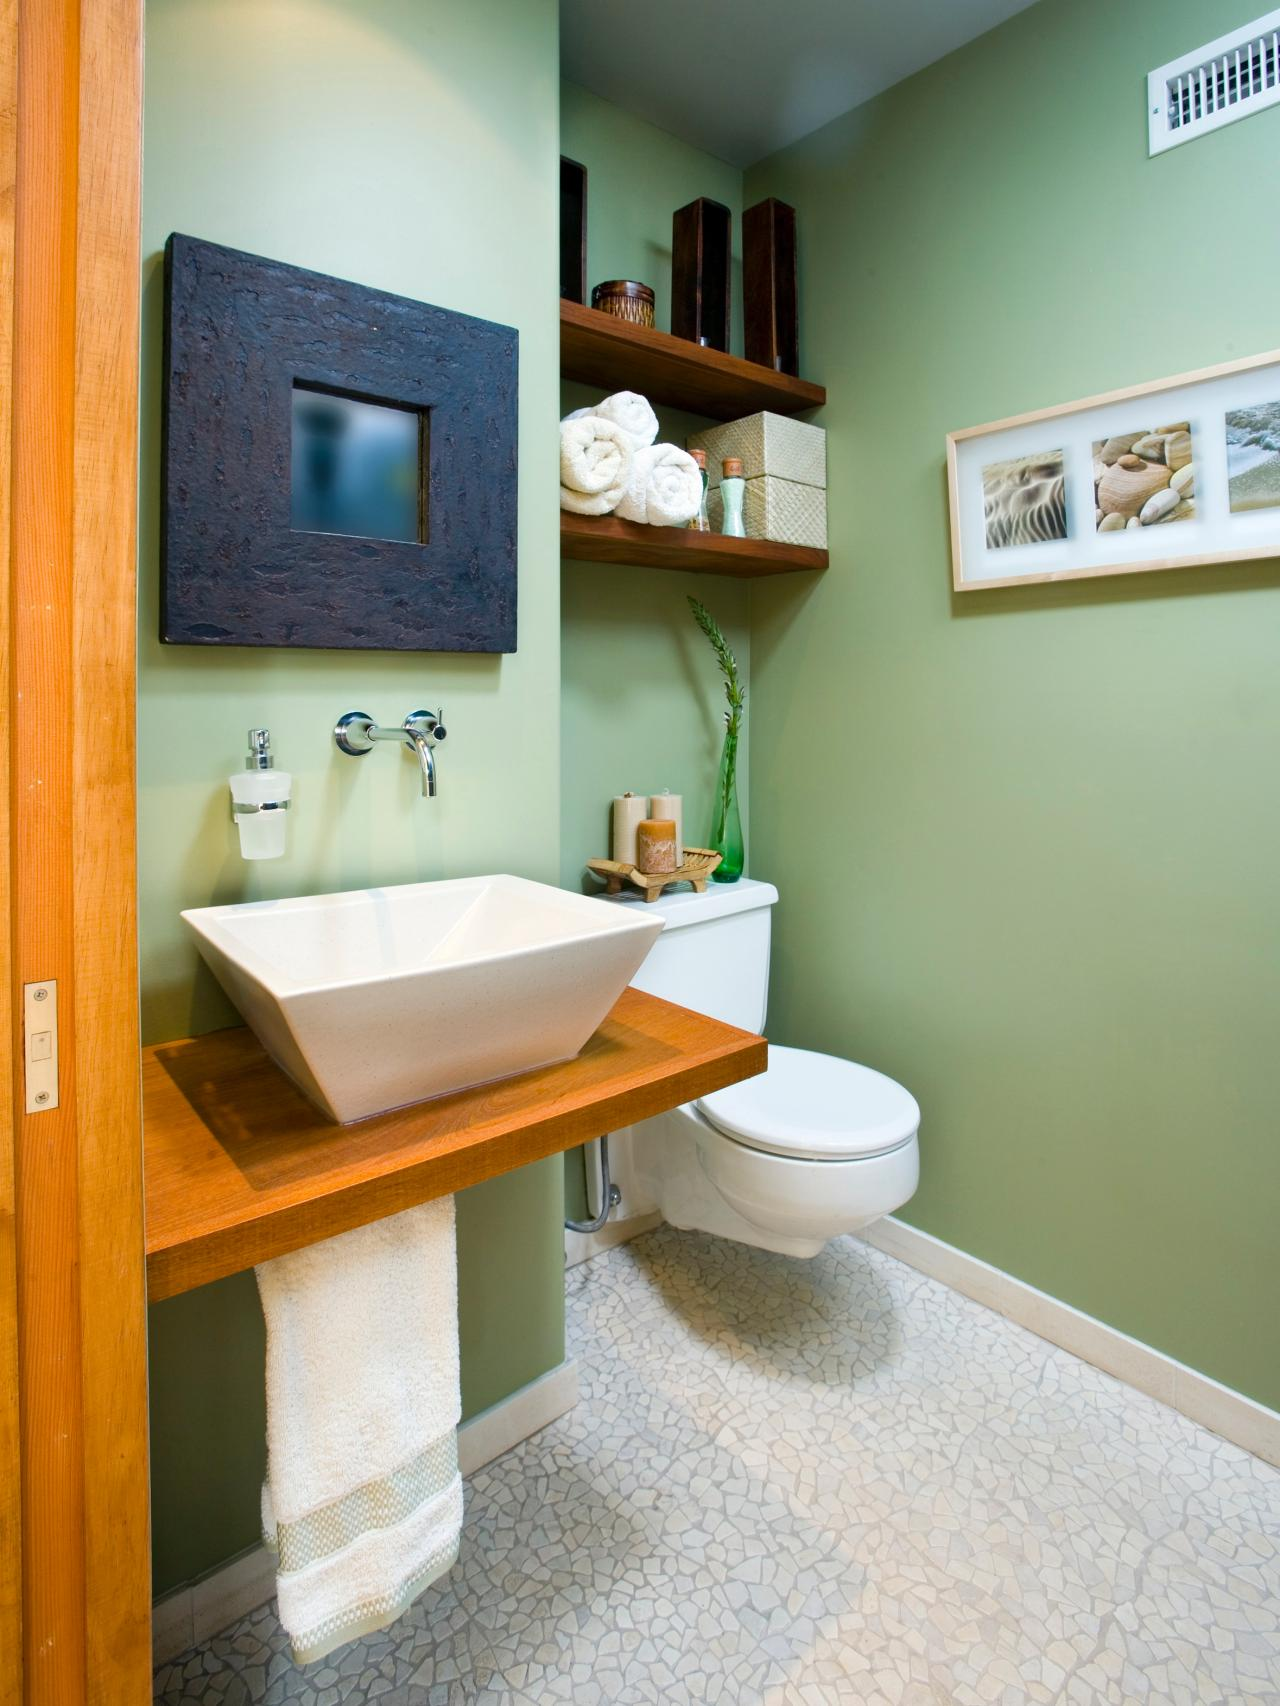 Laminate Bathroom Countertop Options | HGTV